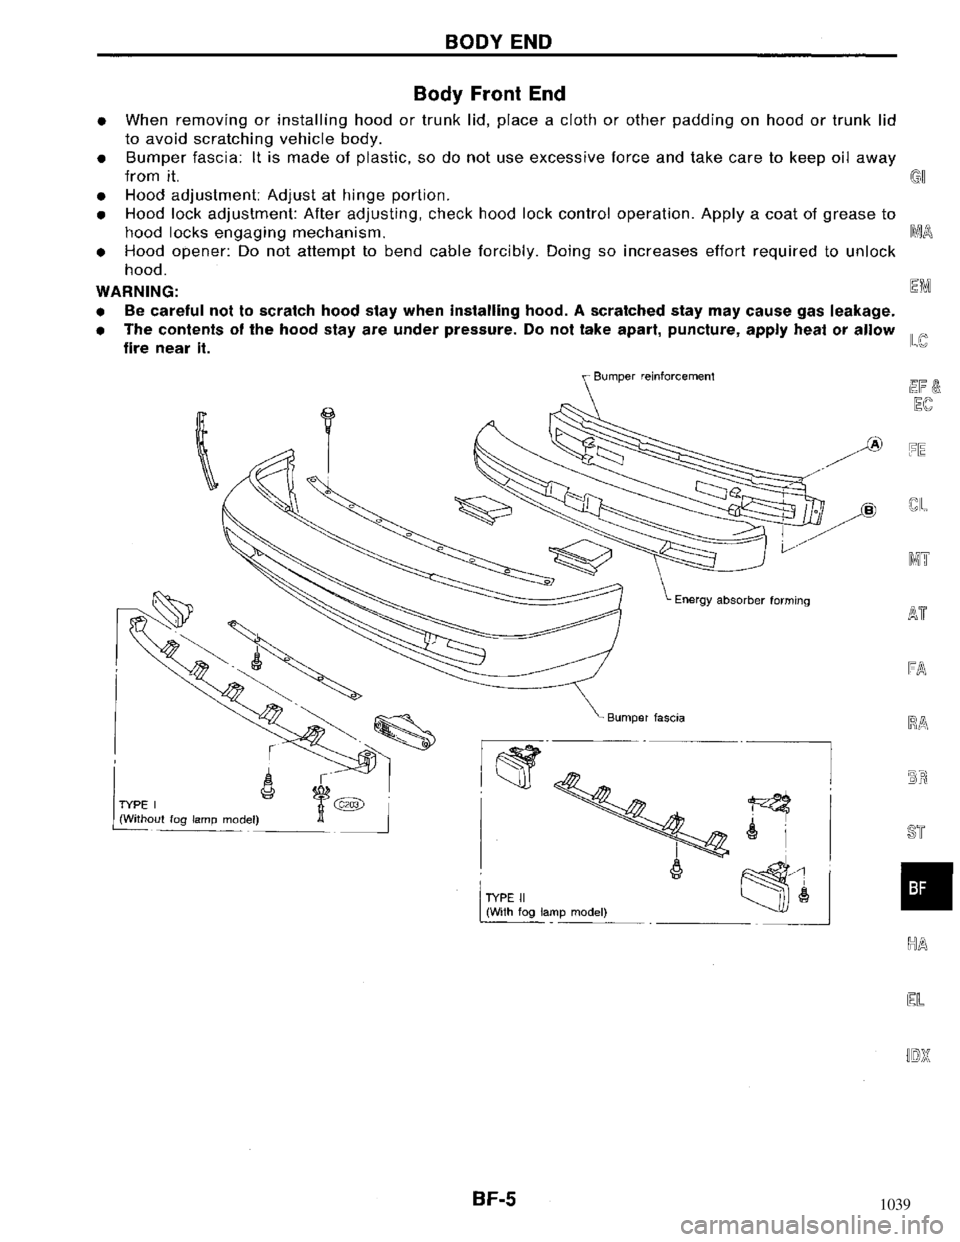 NISSAN MAXIMA 1994 A32 / 4.G Body Workshop Manual, Page 5